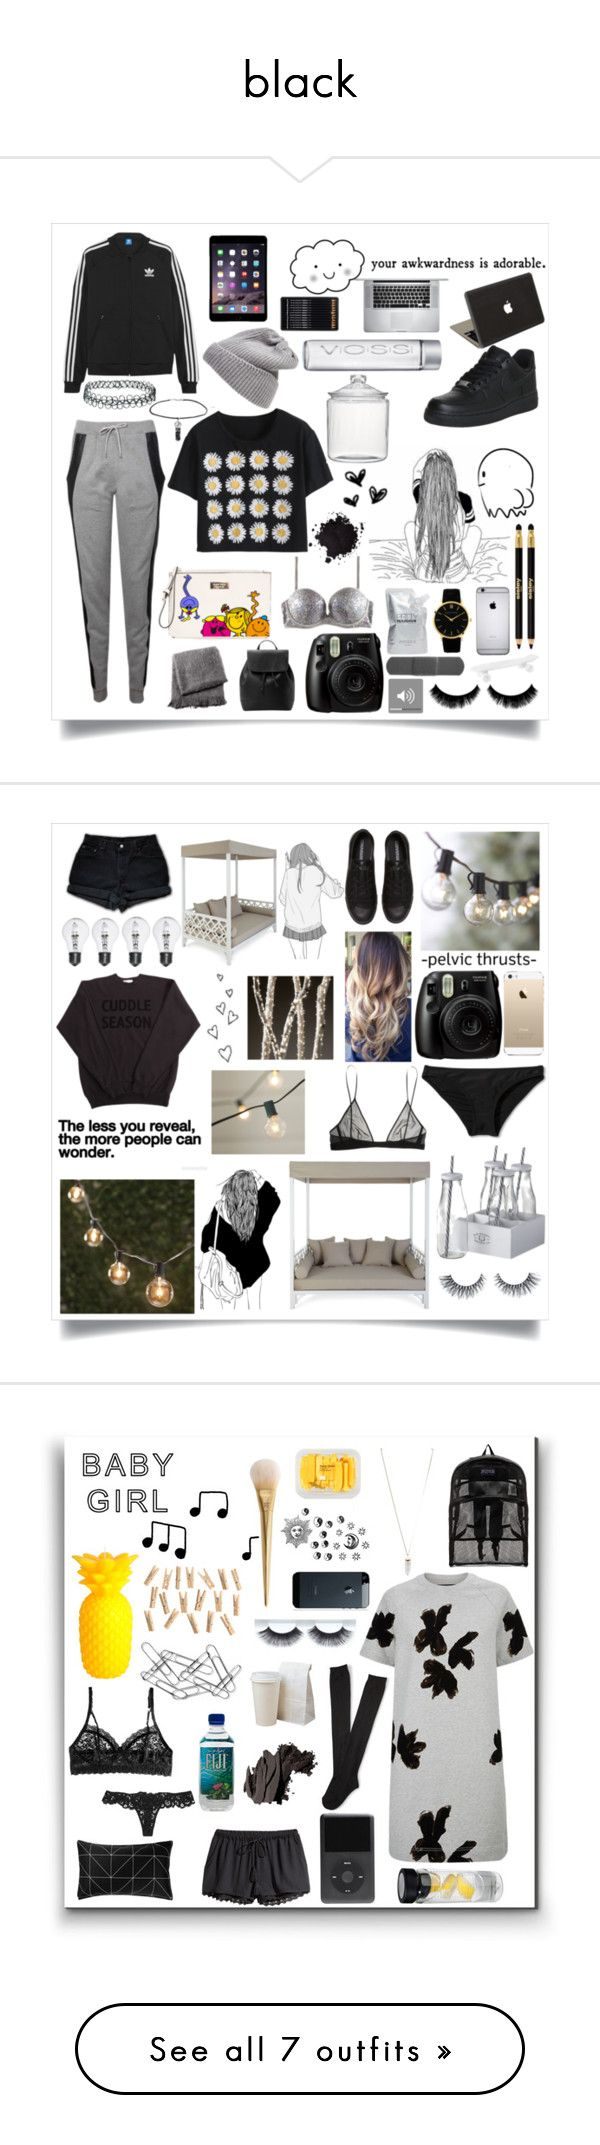 """black"" by estherlillymae ❤ liked on Polyvore featuring Topshop, Lot78, UGG Australia, NIKE, H&M, adidas Originals, Crate and Barrel, MANGO, From the Road and Prtty Peaushun"